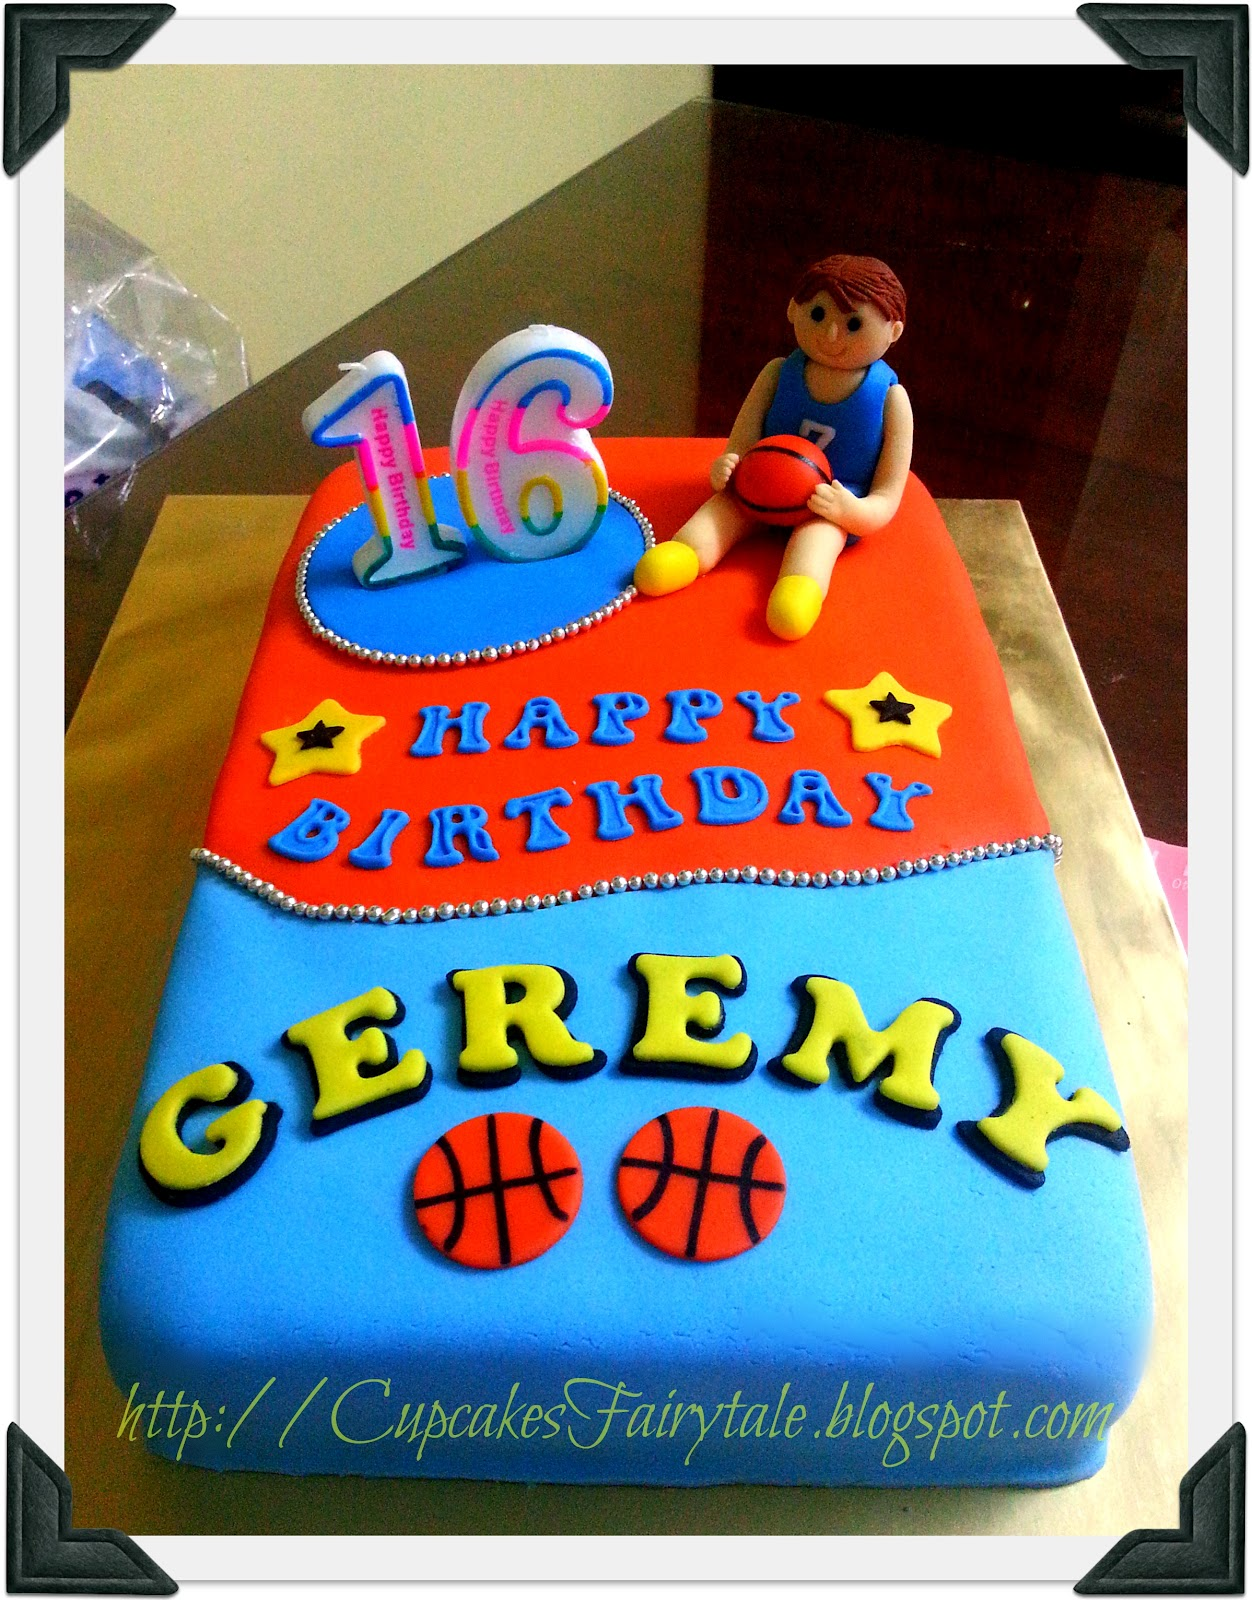 Cupcakes Fairytale Geremys Basketball Theme Birthday Cake